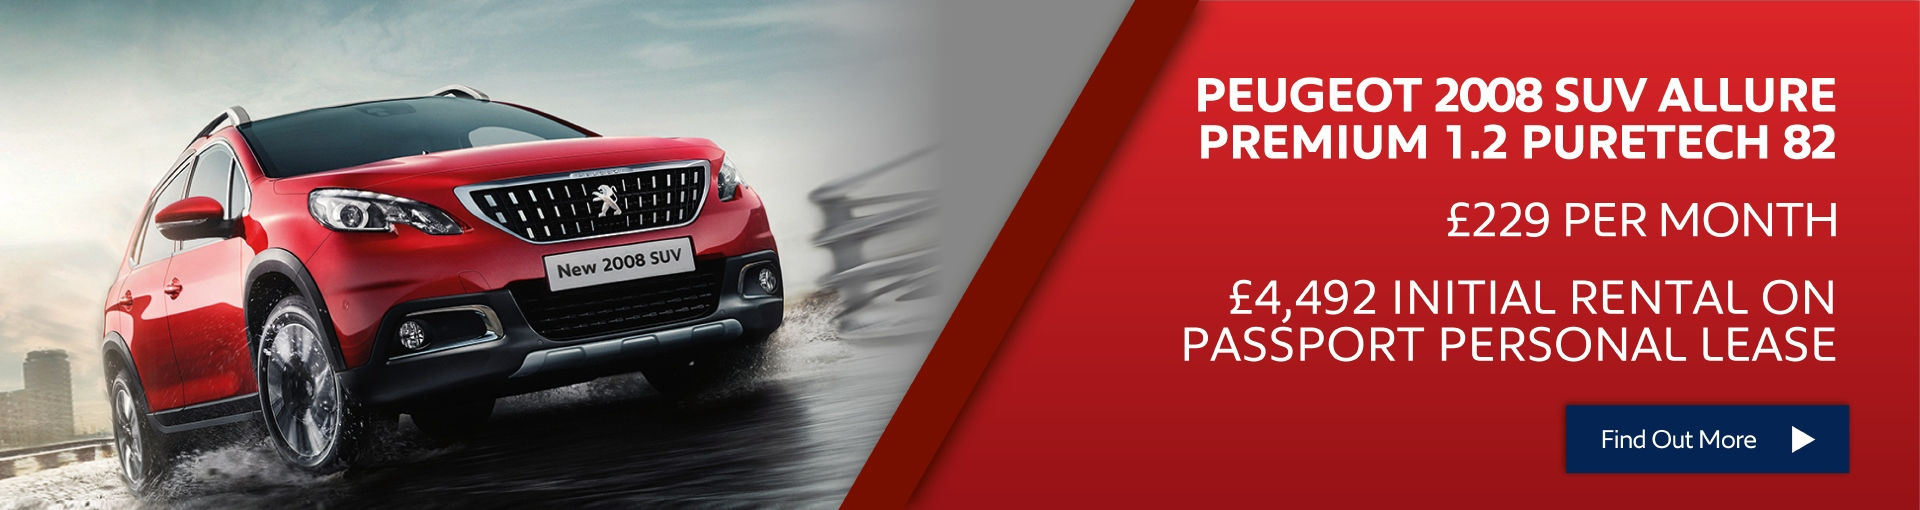 Peugeot 2008 SUV £229 per month